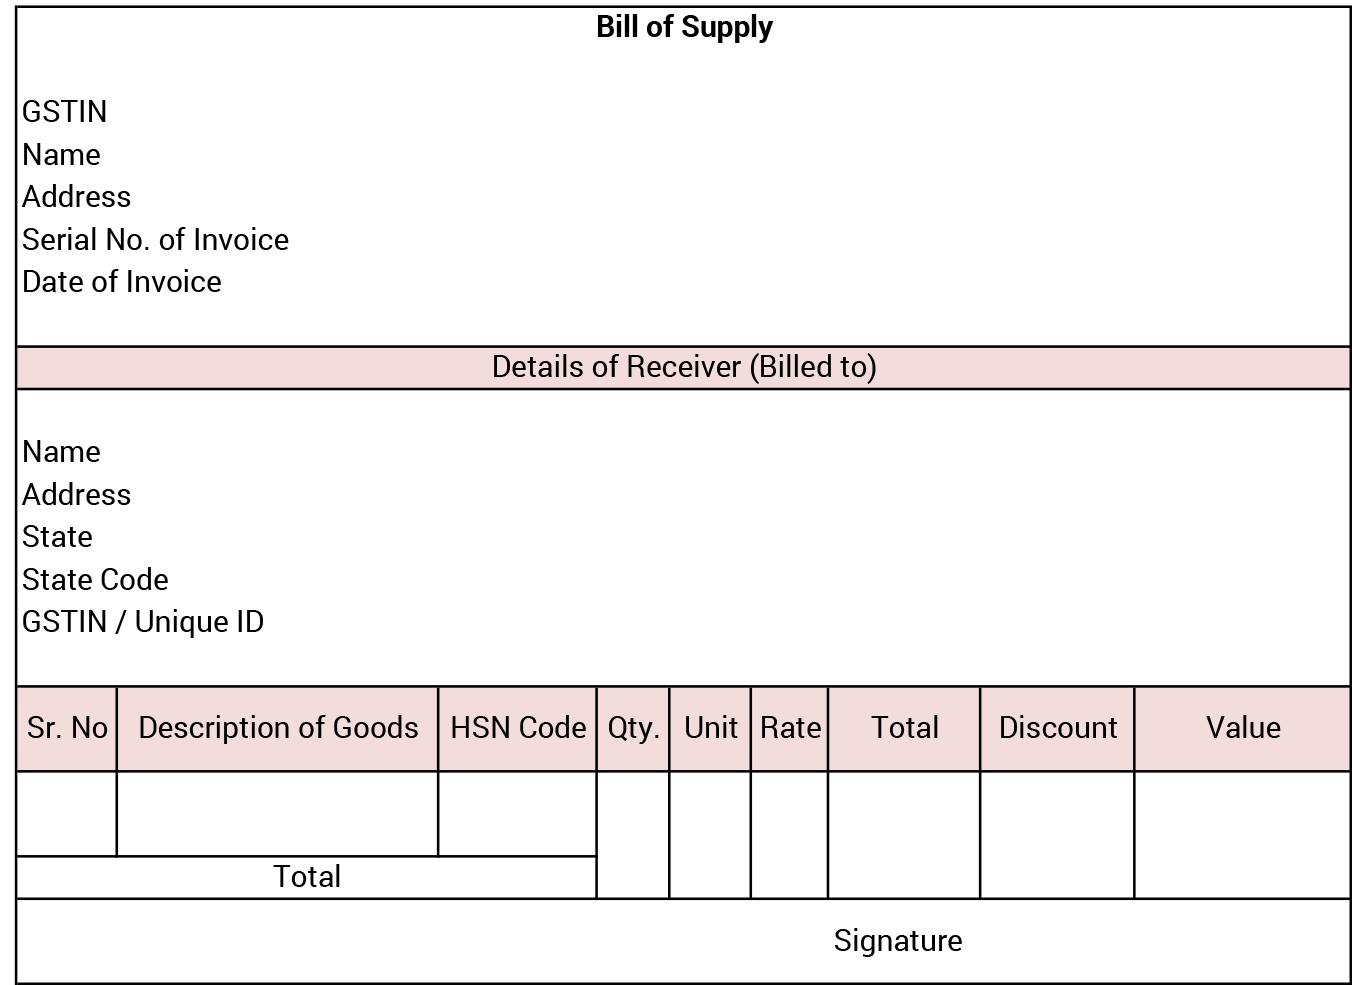 Invoice Format Under Gst Has Been Derived Checkout What Are